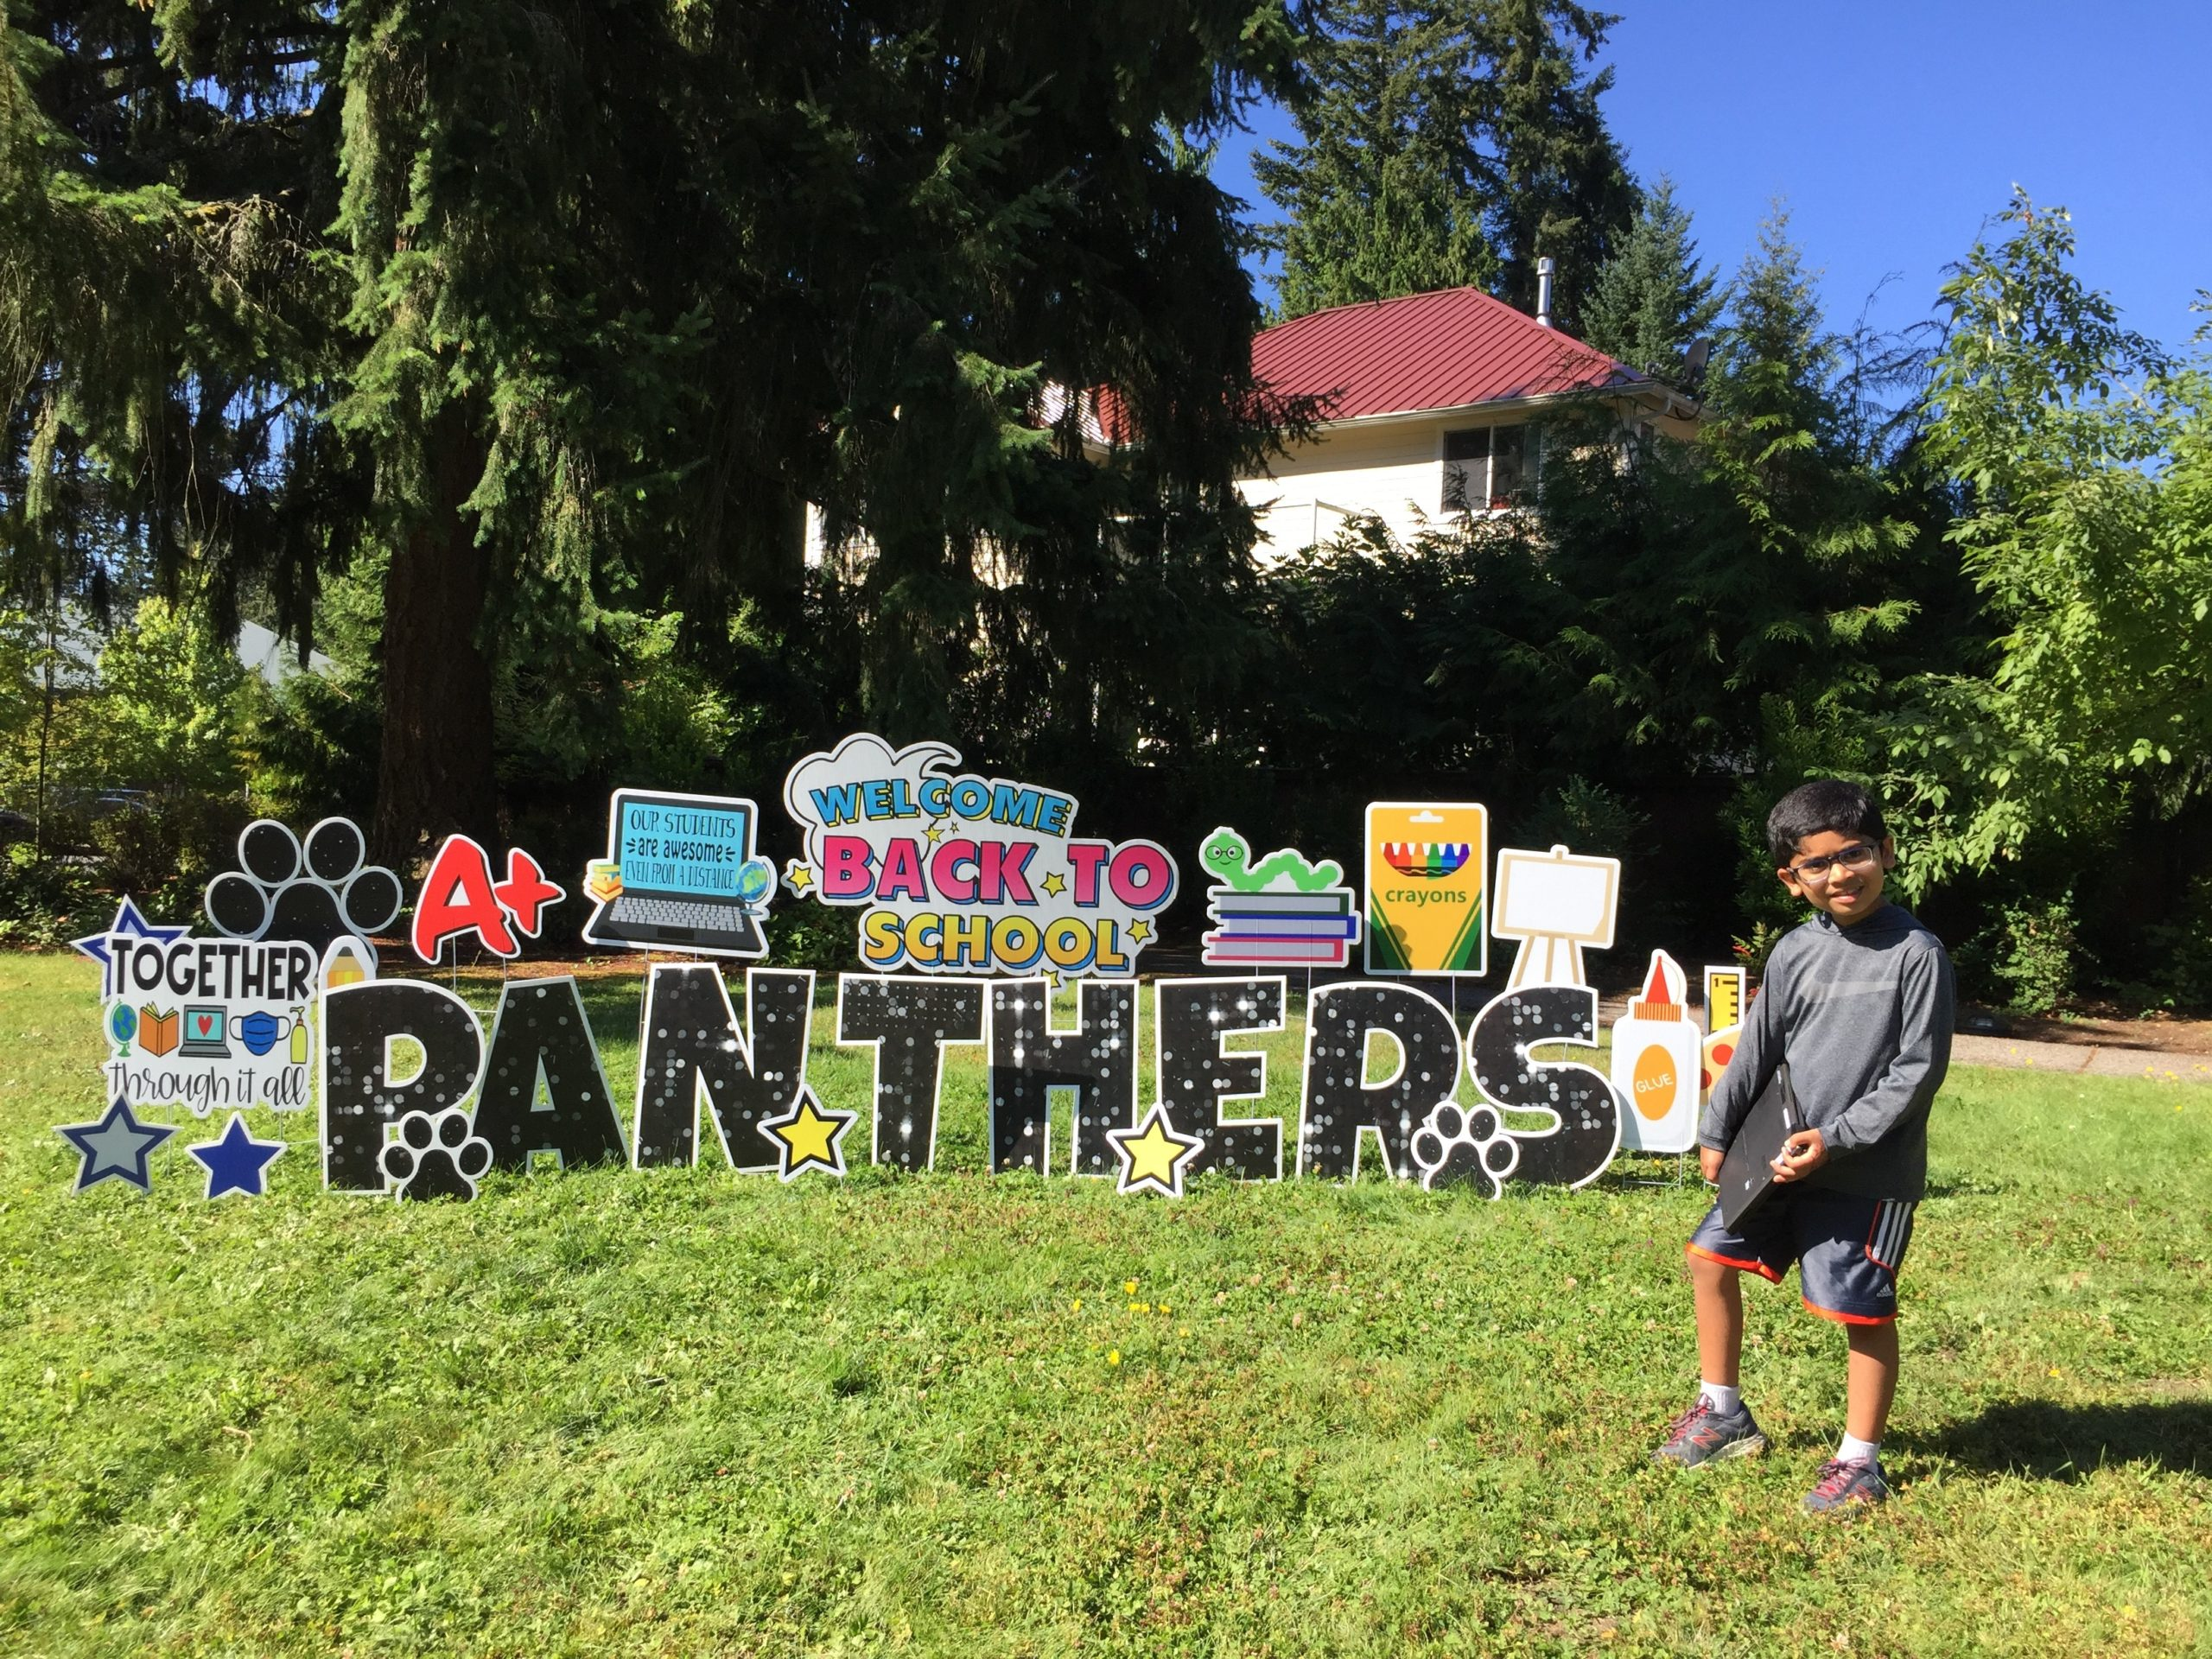 A student smiling in front of a Panthers sign